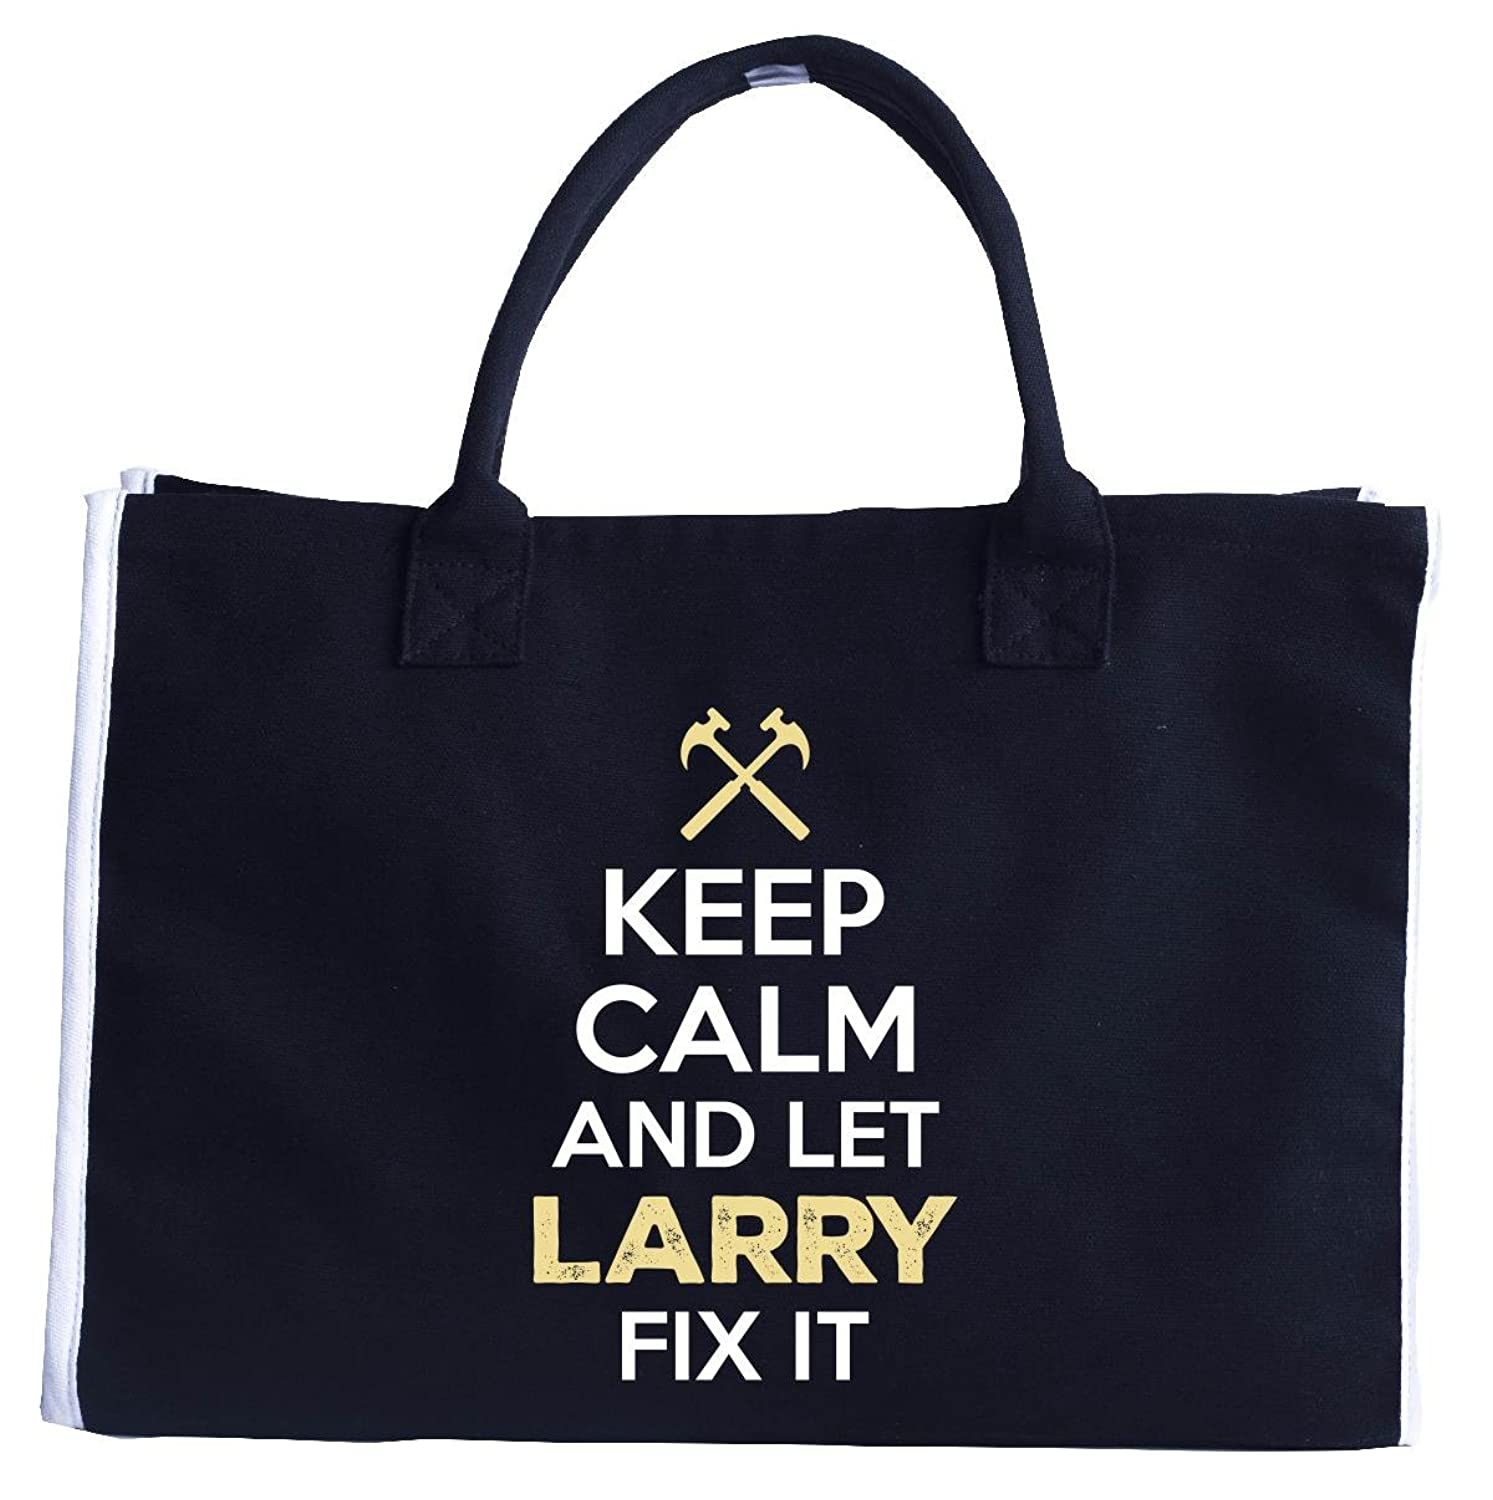 Keep Calm And Let Larry Fix It - Fashion Customized Tote Bag